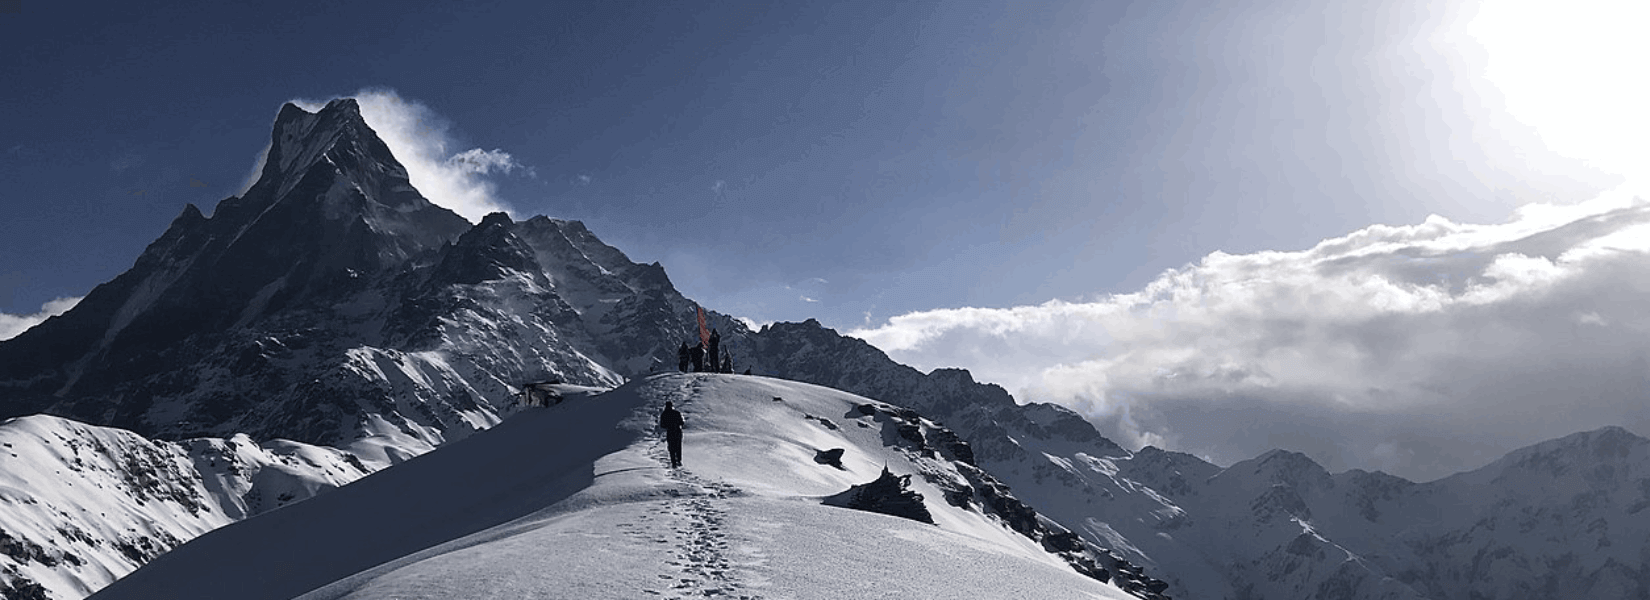 mardi himal trek in december